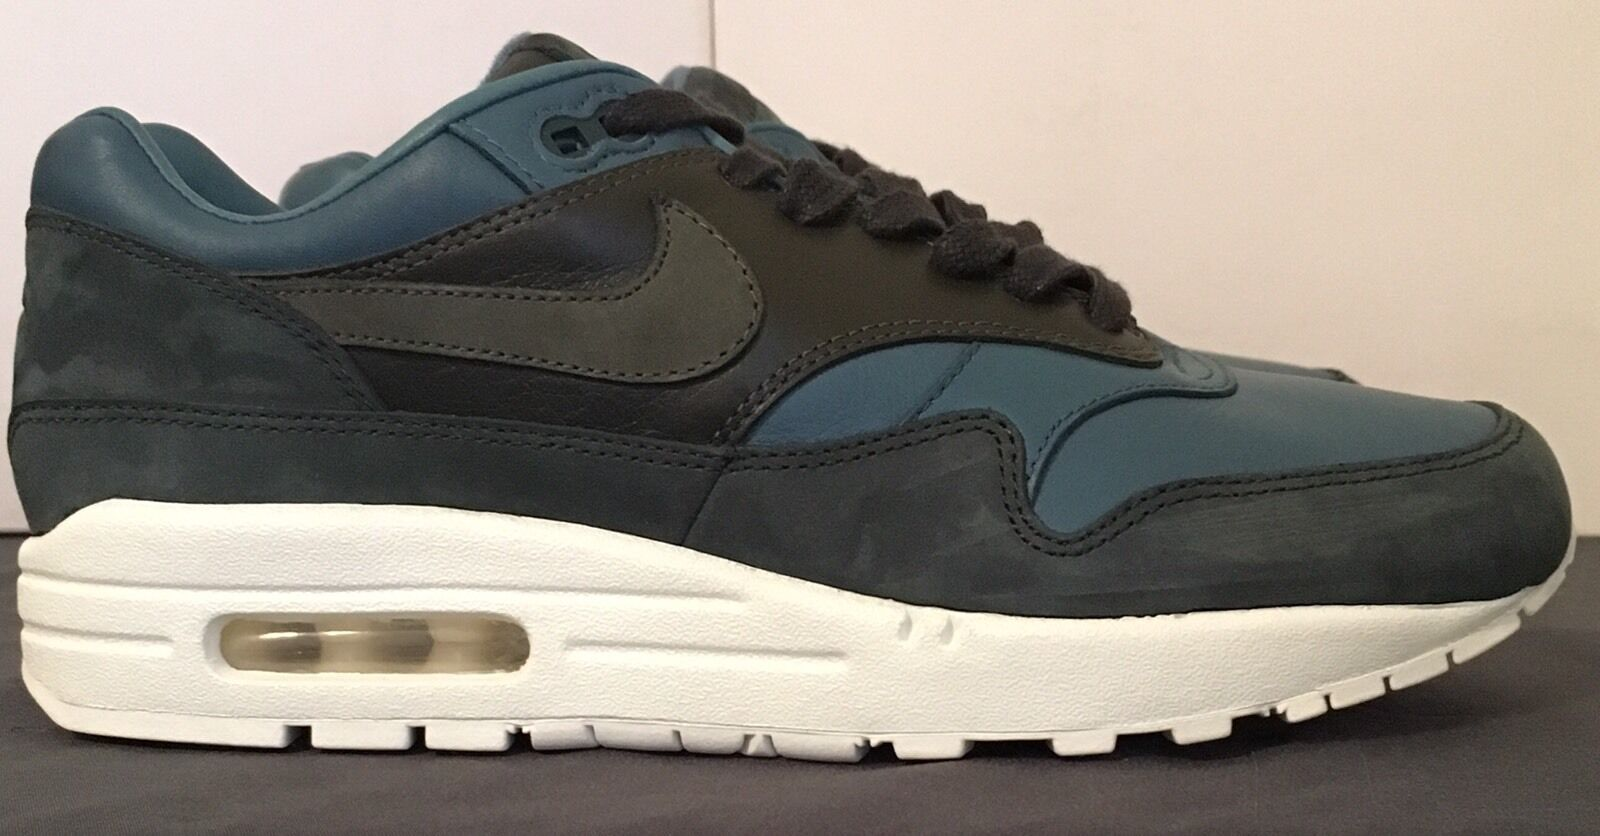 SZ.8 NIKE MENS Nikelab Air Max 1 Pinnacle 855554  -300 Iced Jade  Teal  negozio di moda in vendita